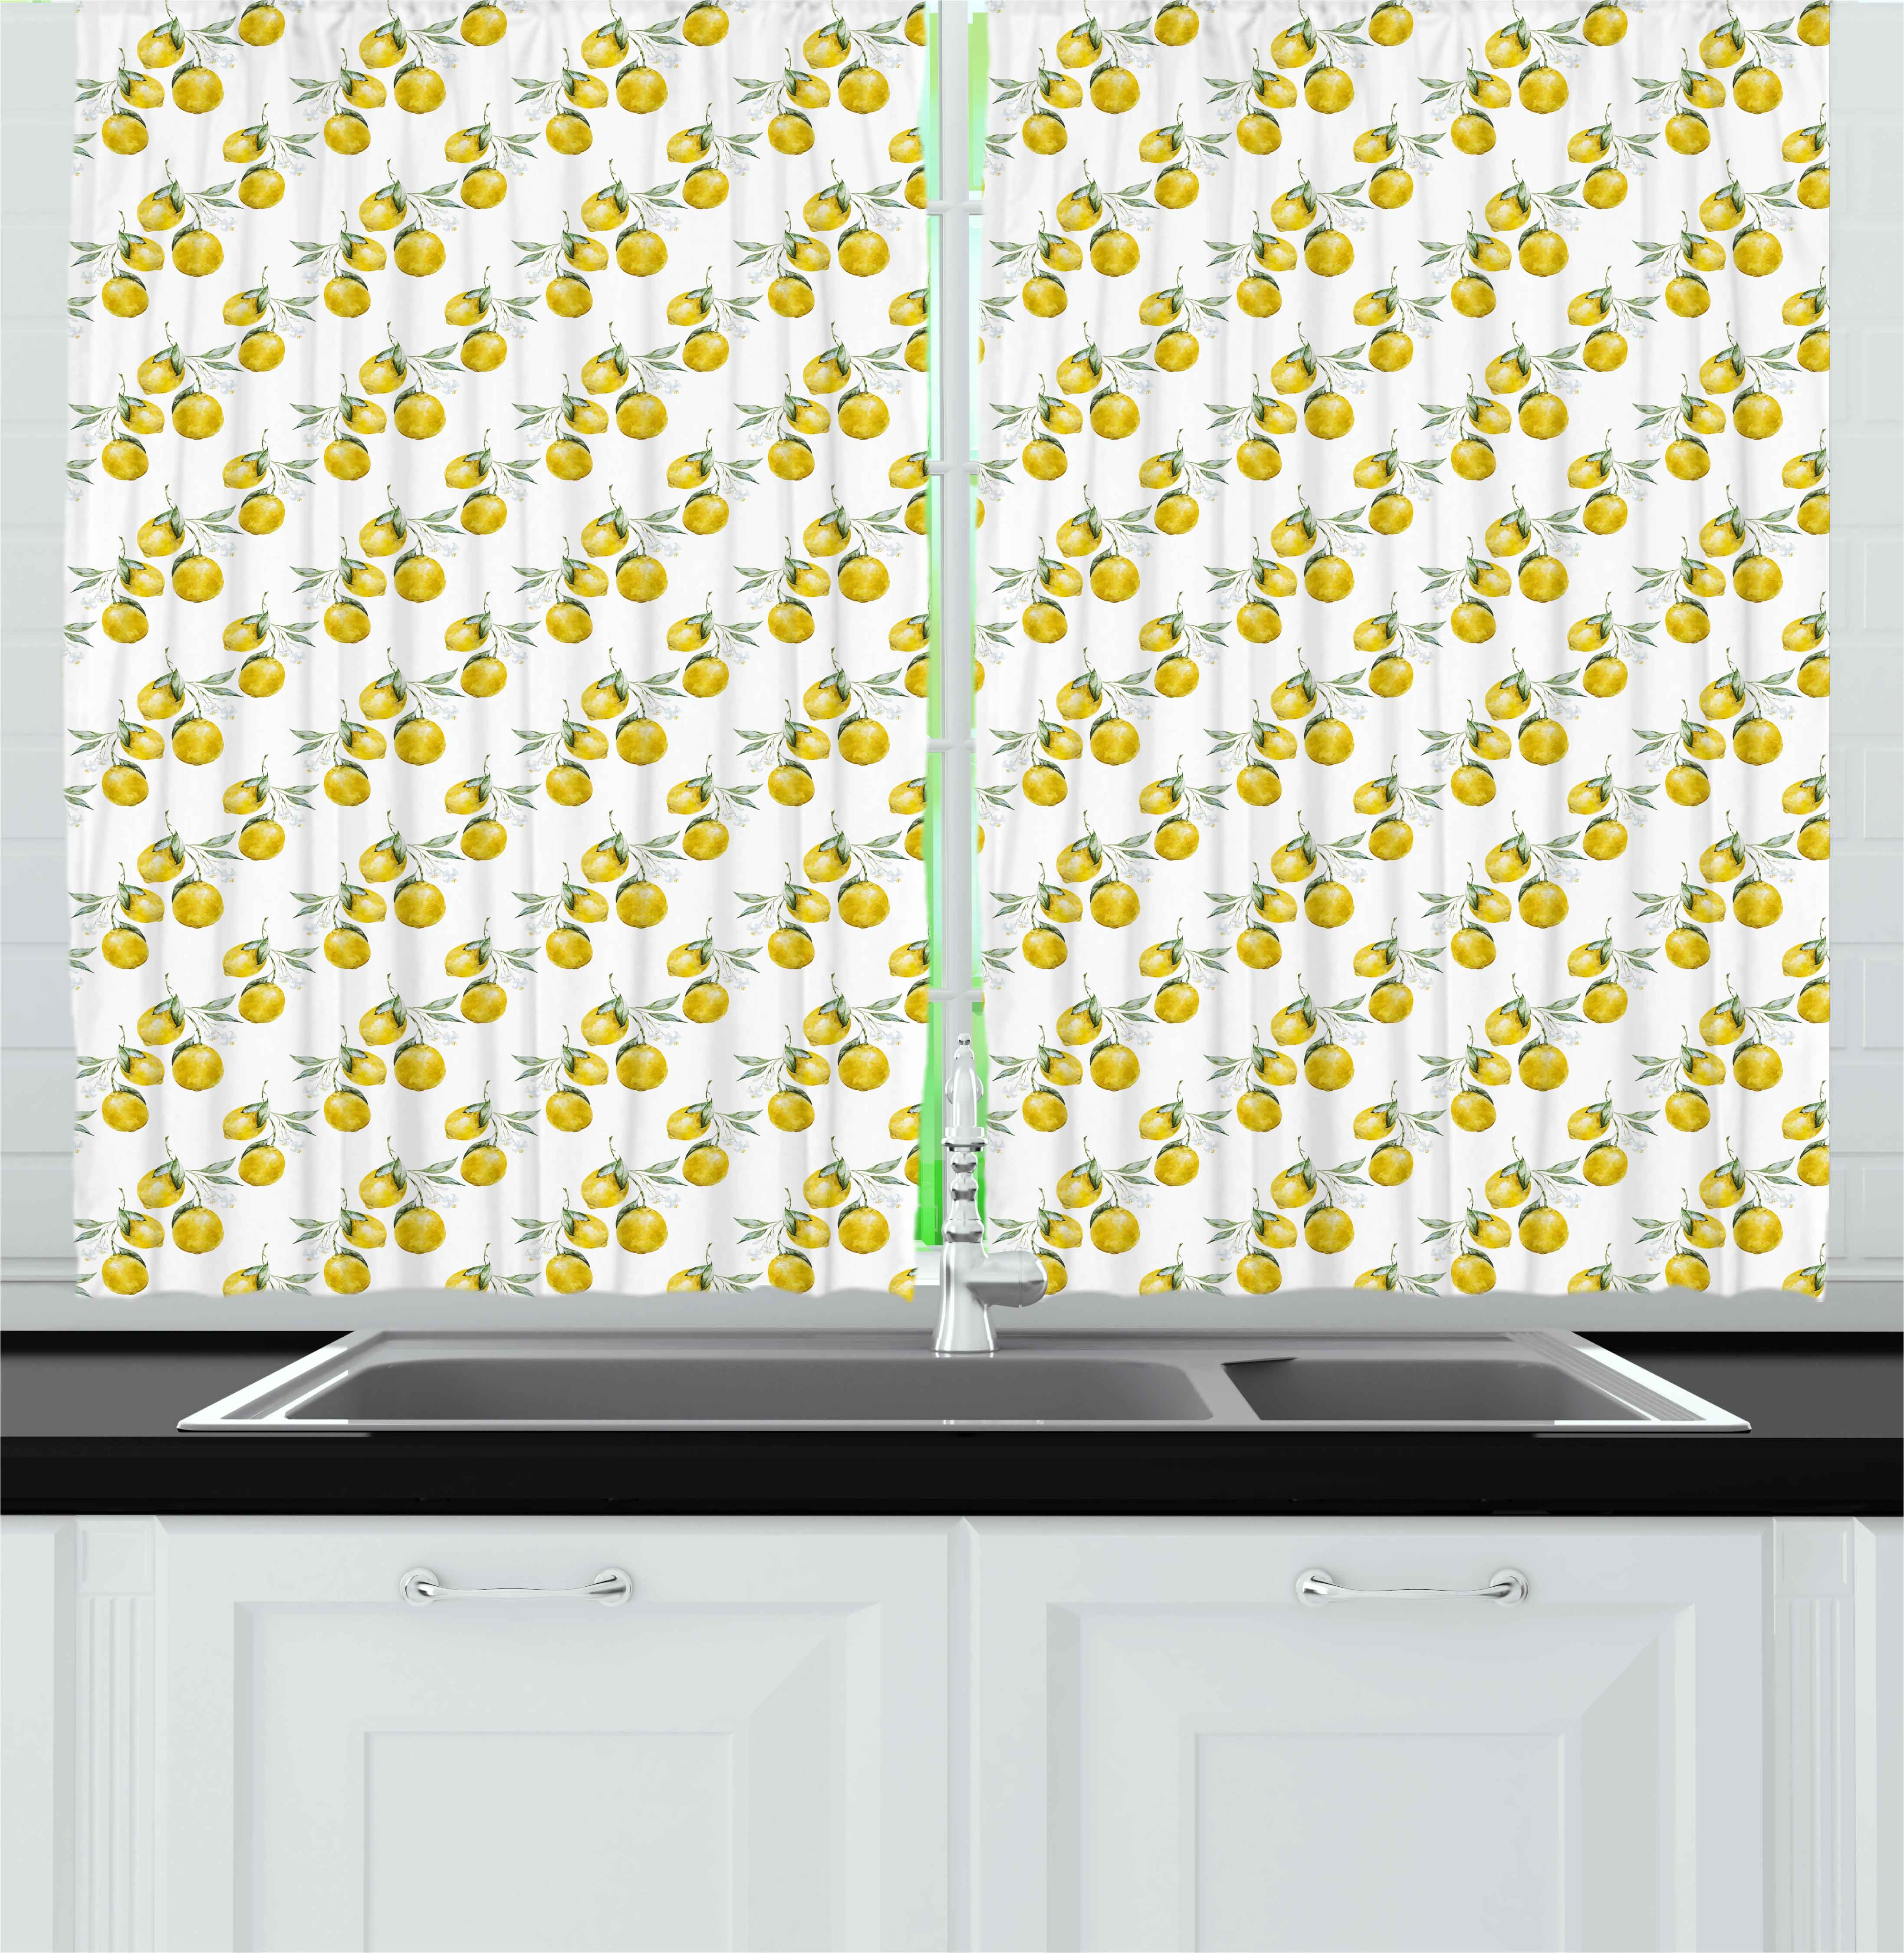 Lemon Green Curtains Nature Curtains 2 Panels Set Lemon Tree Branches Agriculture Kitchen Lemonade Citrus Figure Graphic Art Window Drapes For Living Room Bedroom 55w X